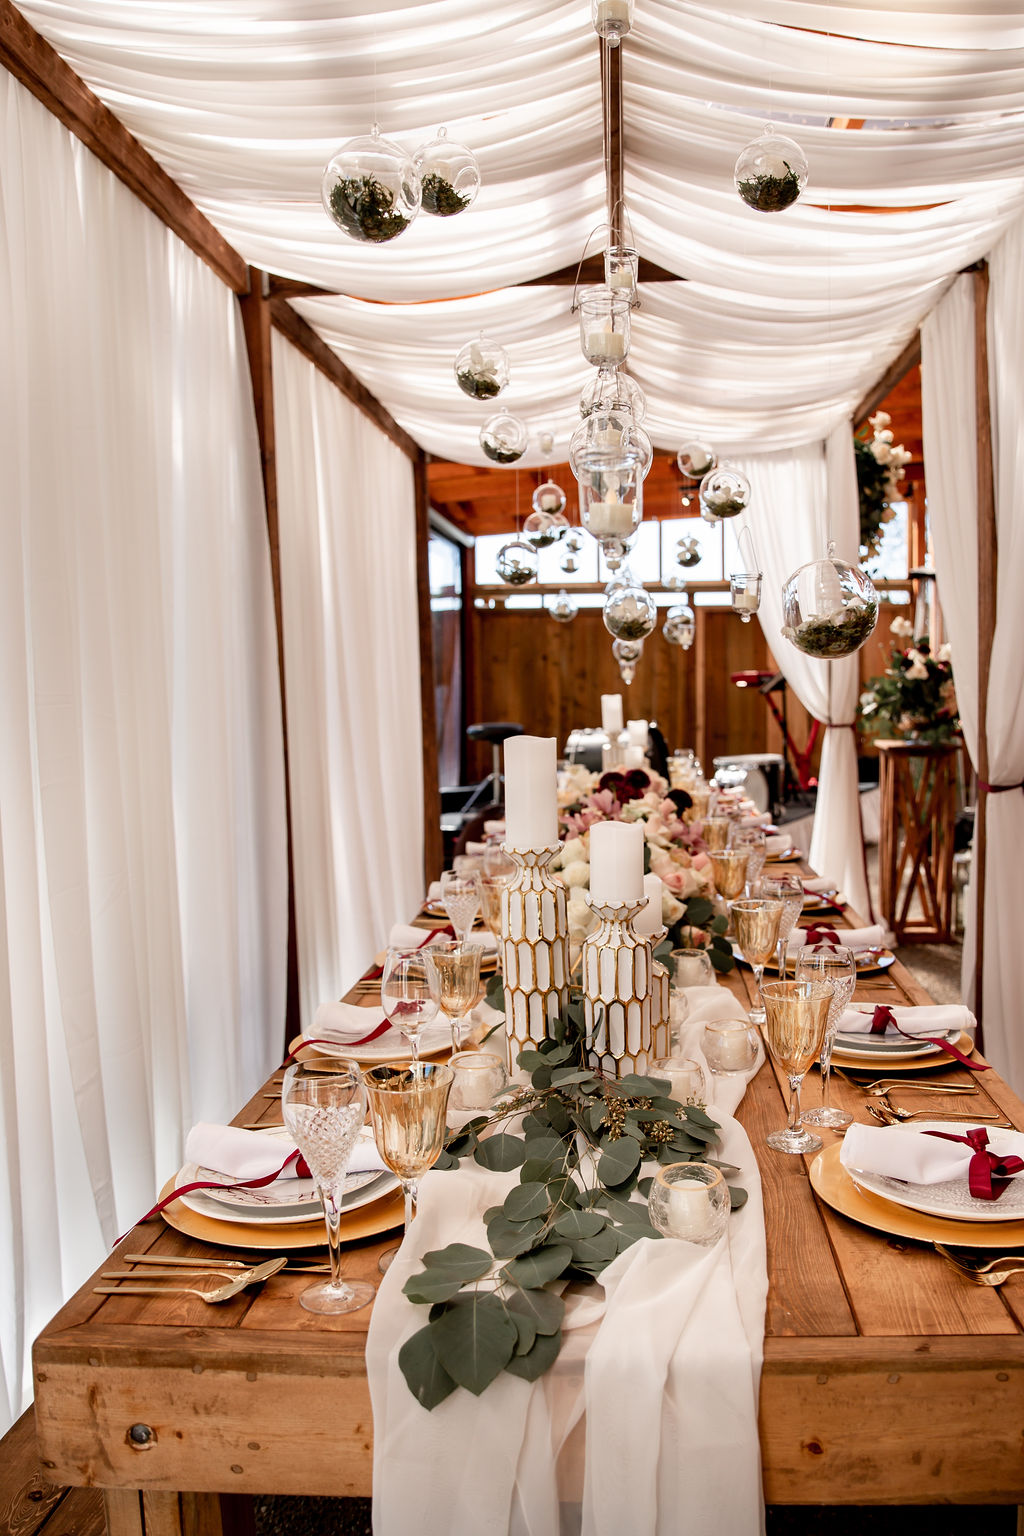 Trestle table with white curtains for wedding reception by Ellssi Vancouver